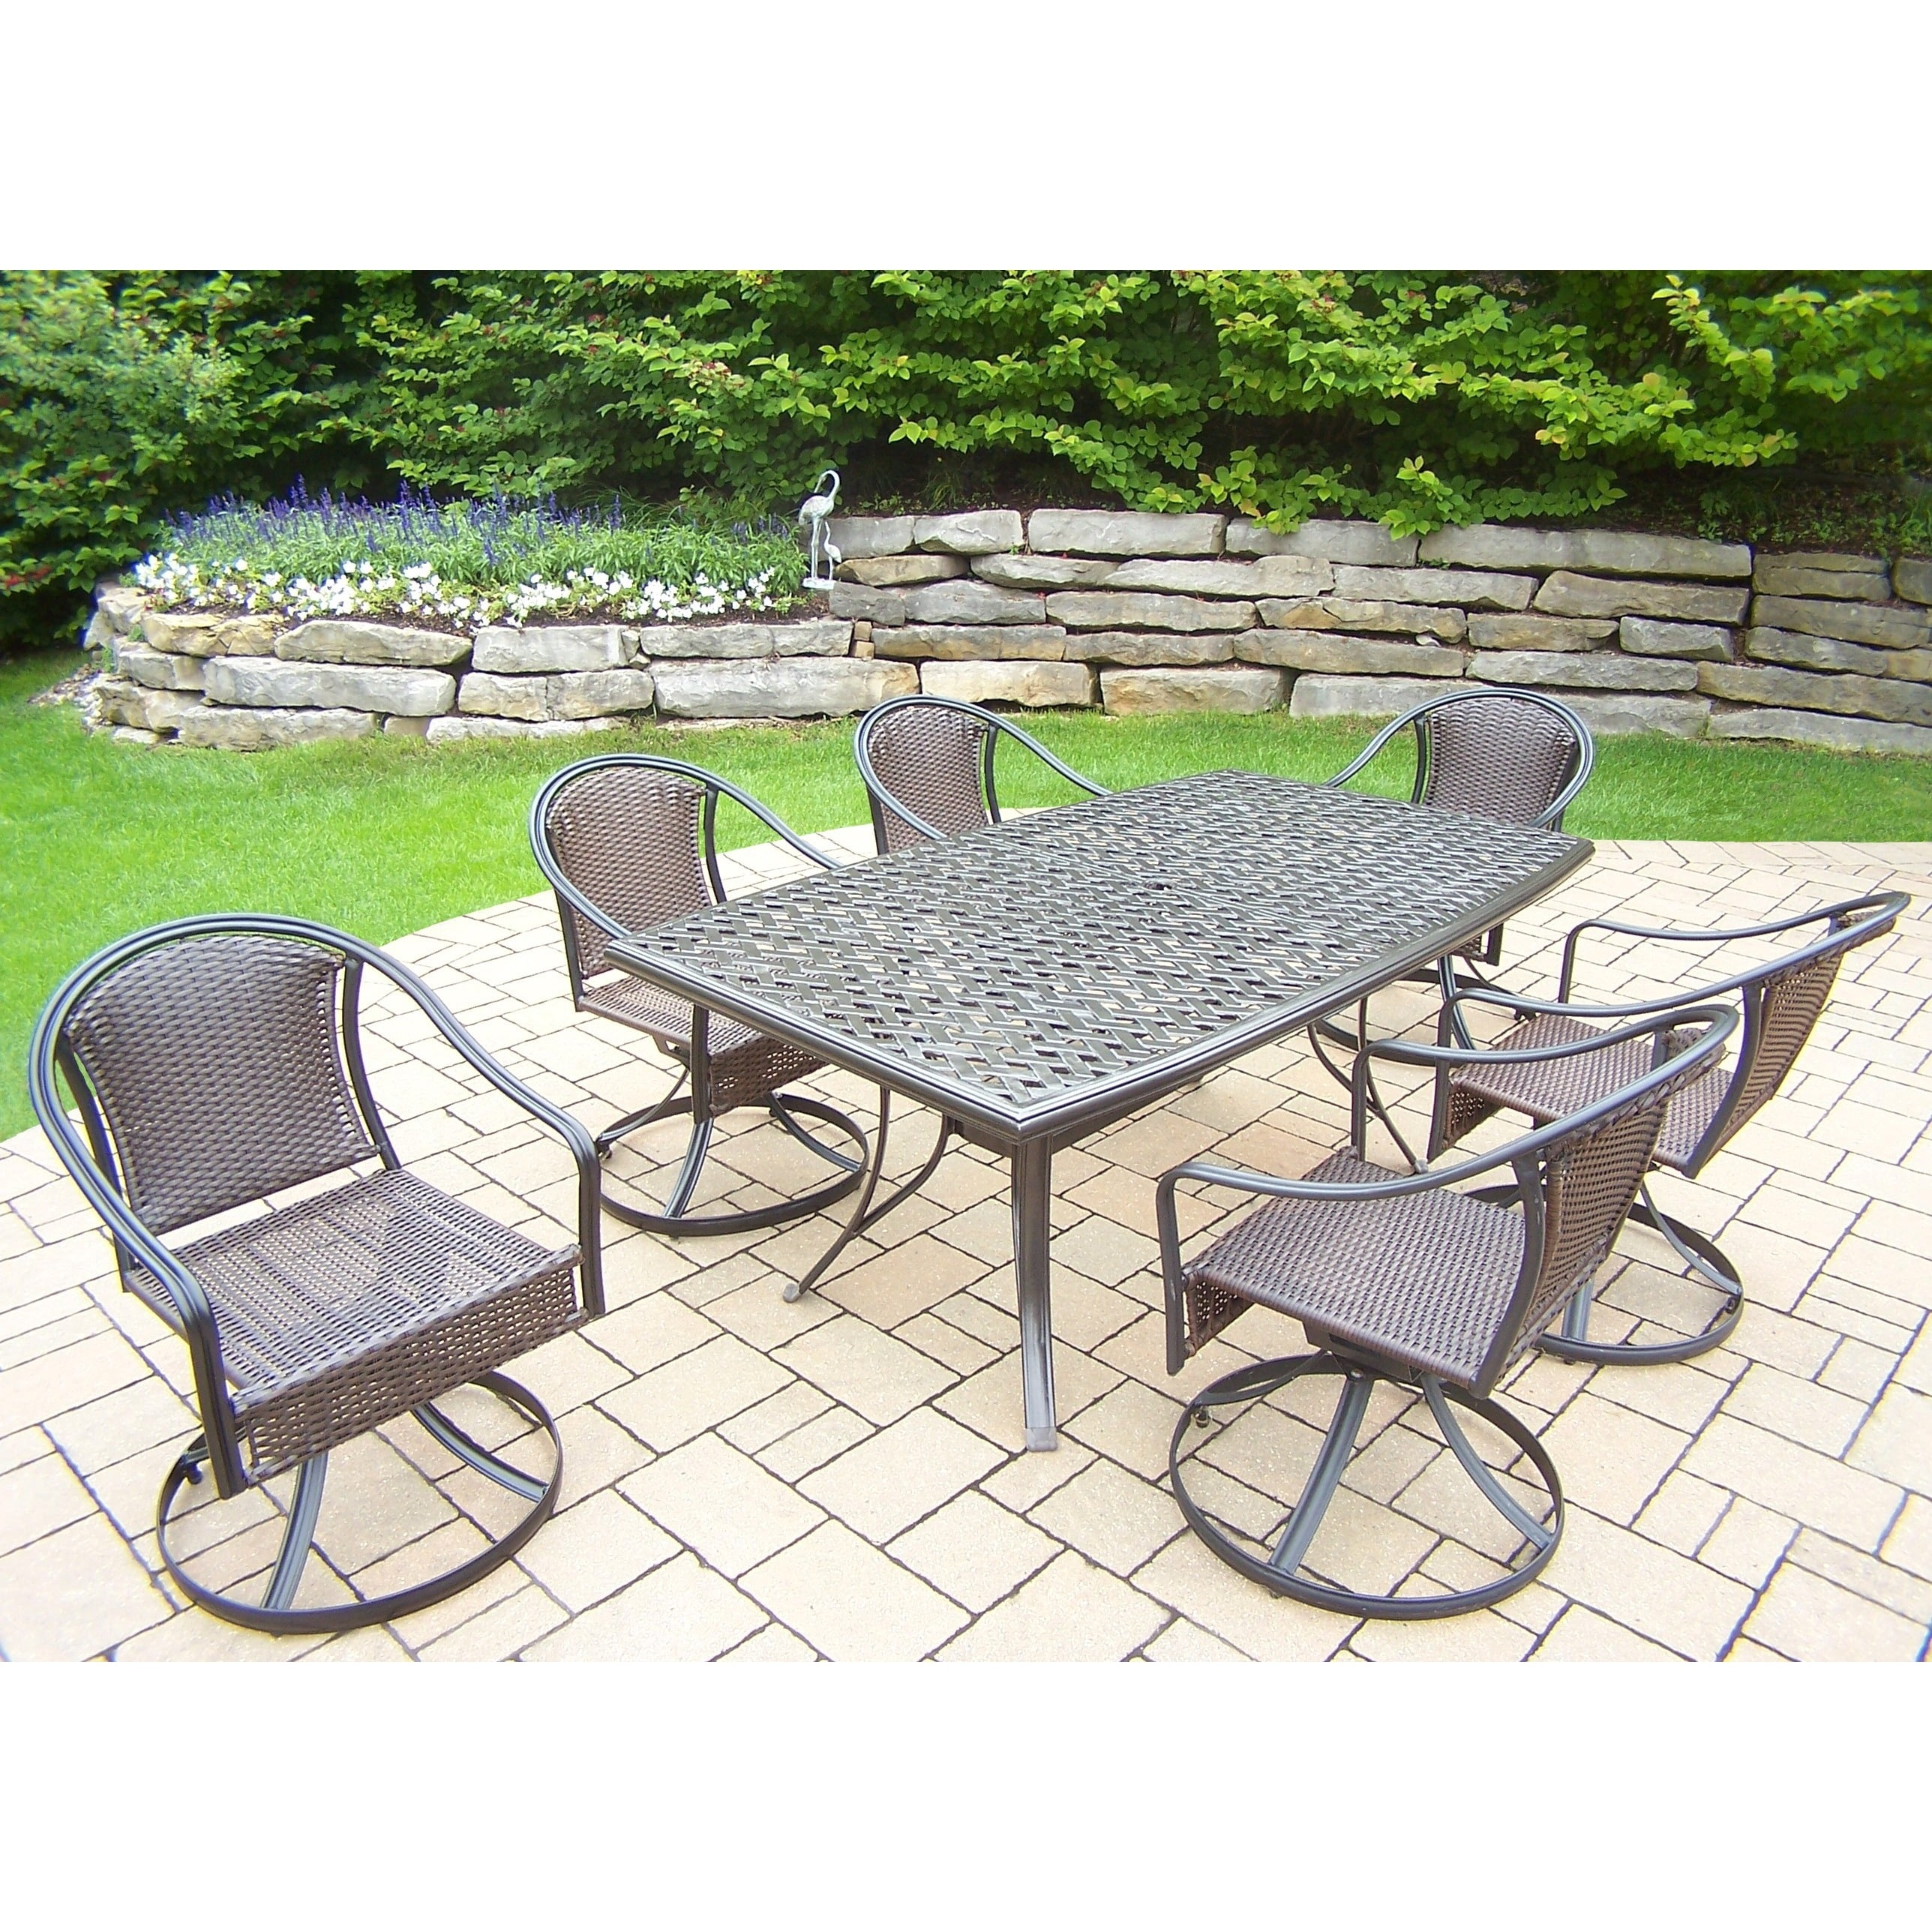 Oakland Living Corporation Aluminum Table and Chairs 7-piece Dining Set